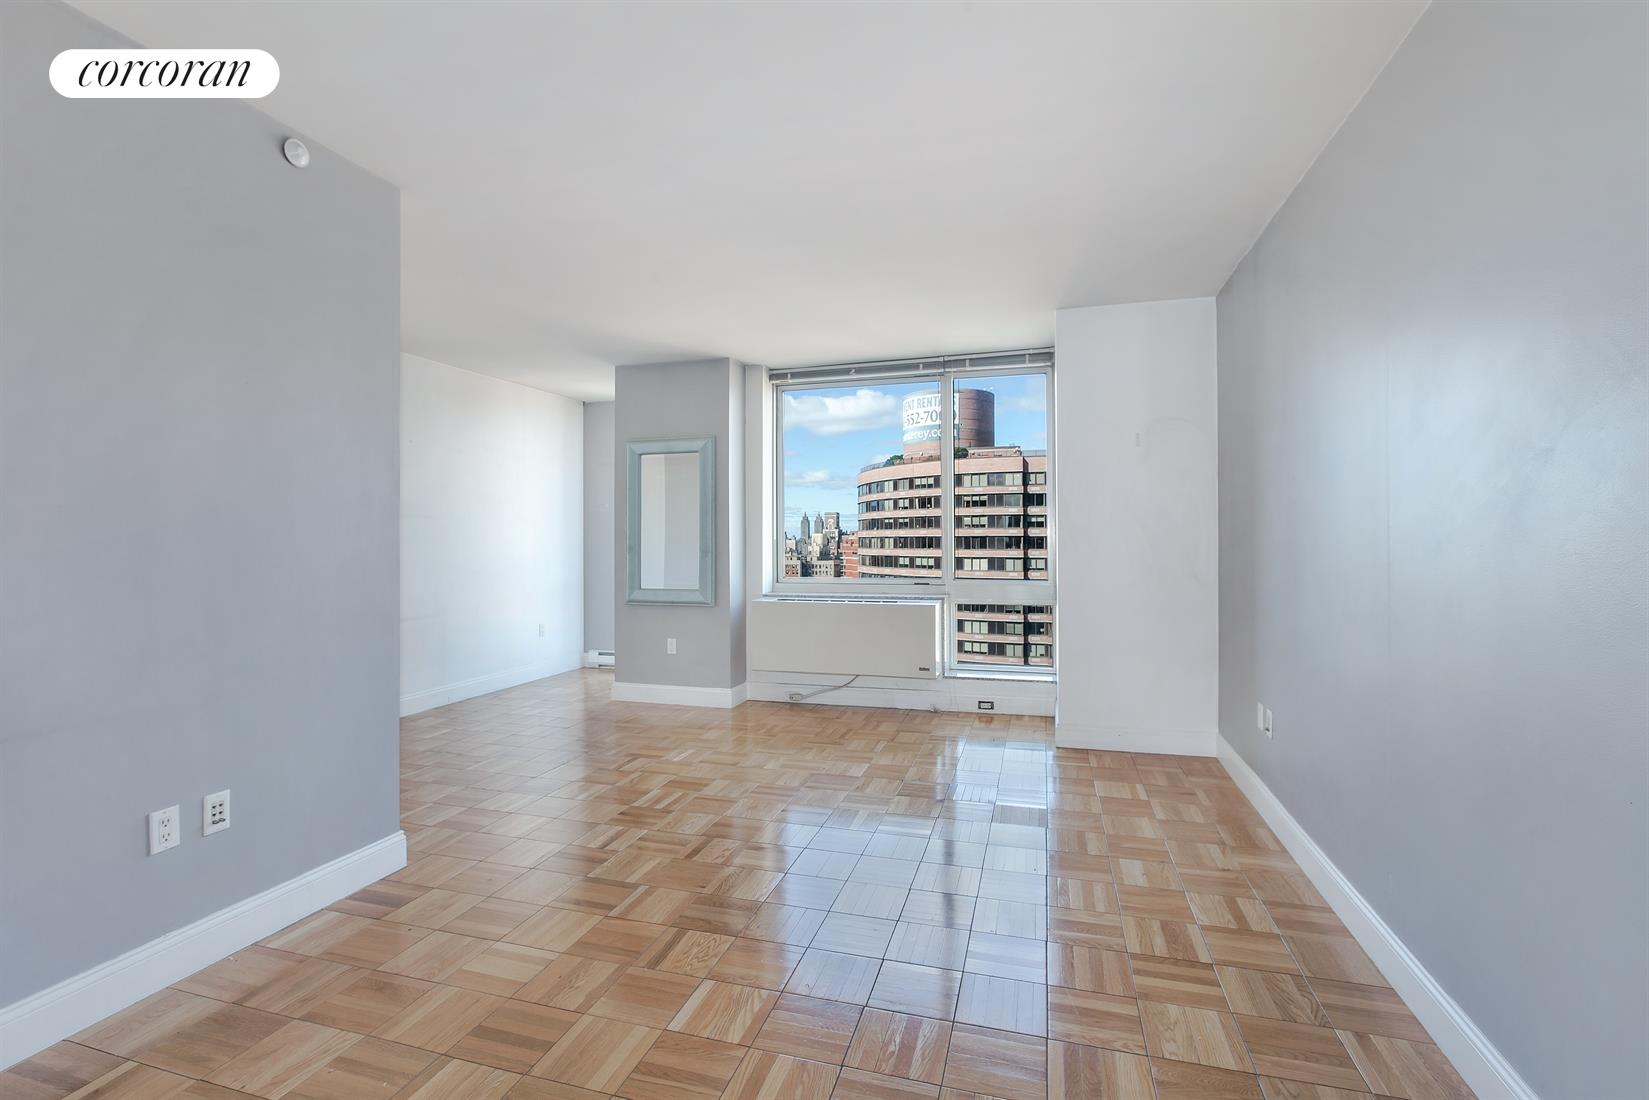 215 East 96th Street, 29K, Living Room